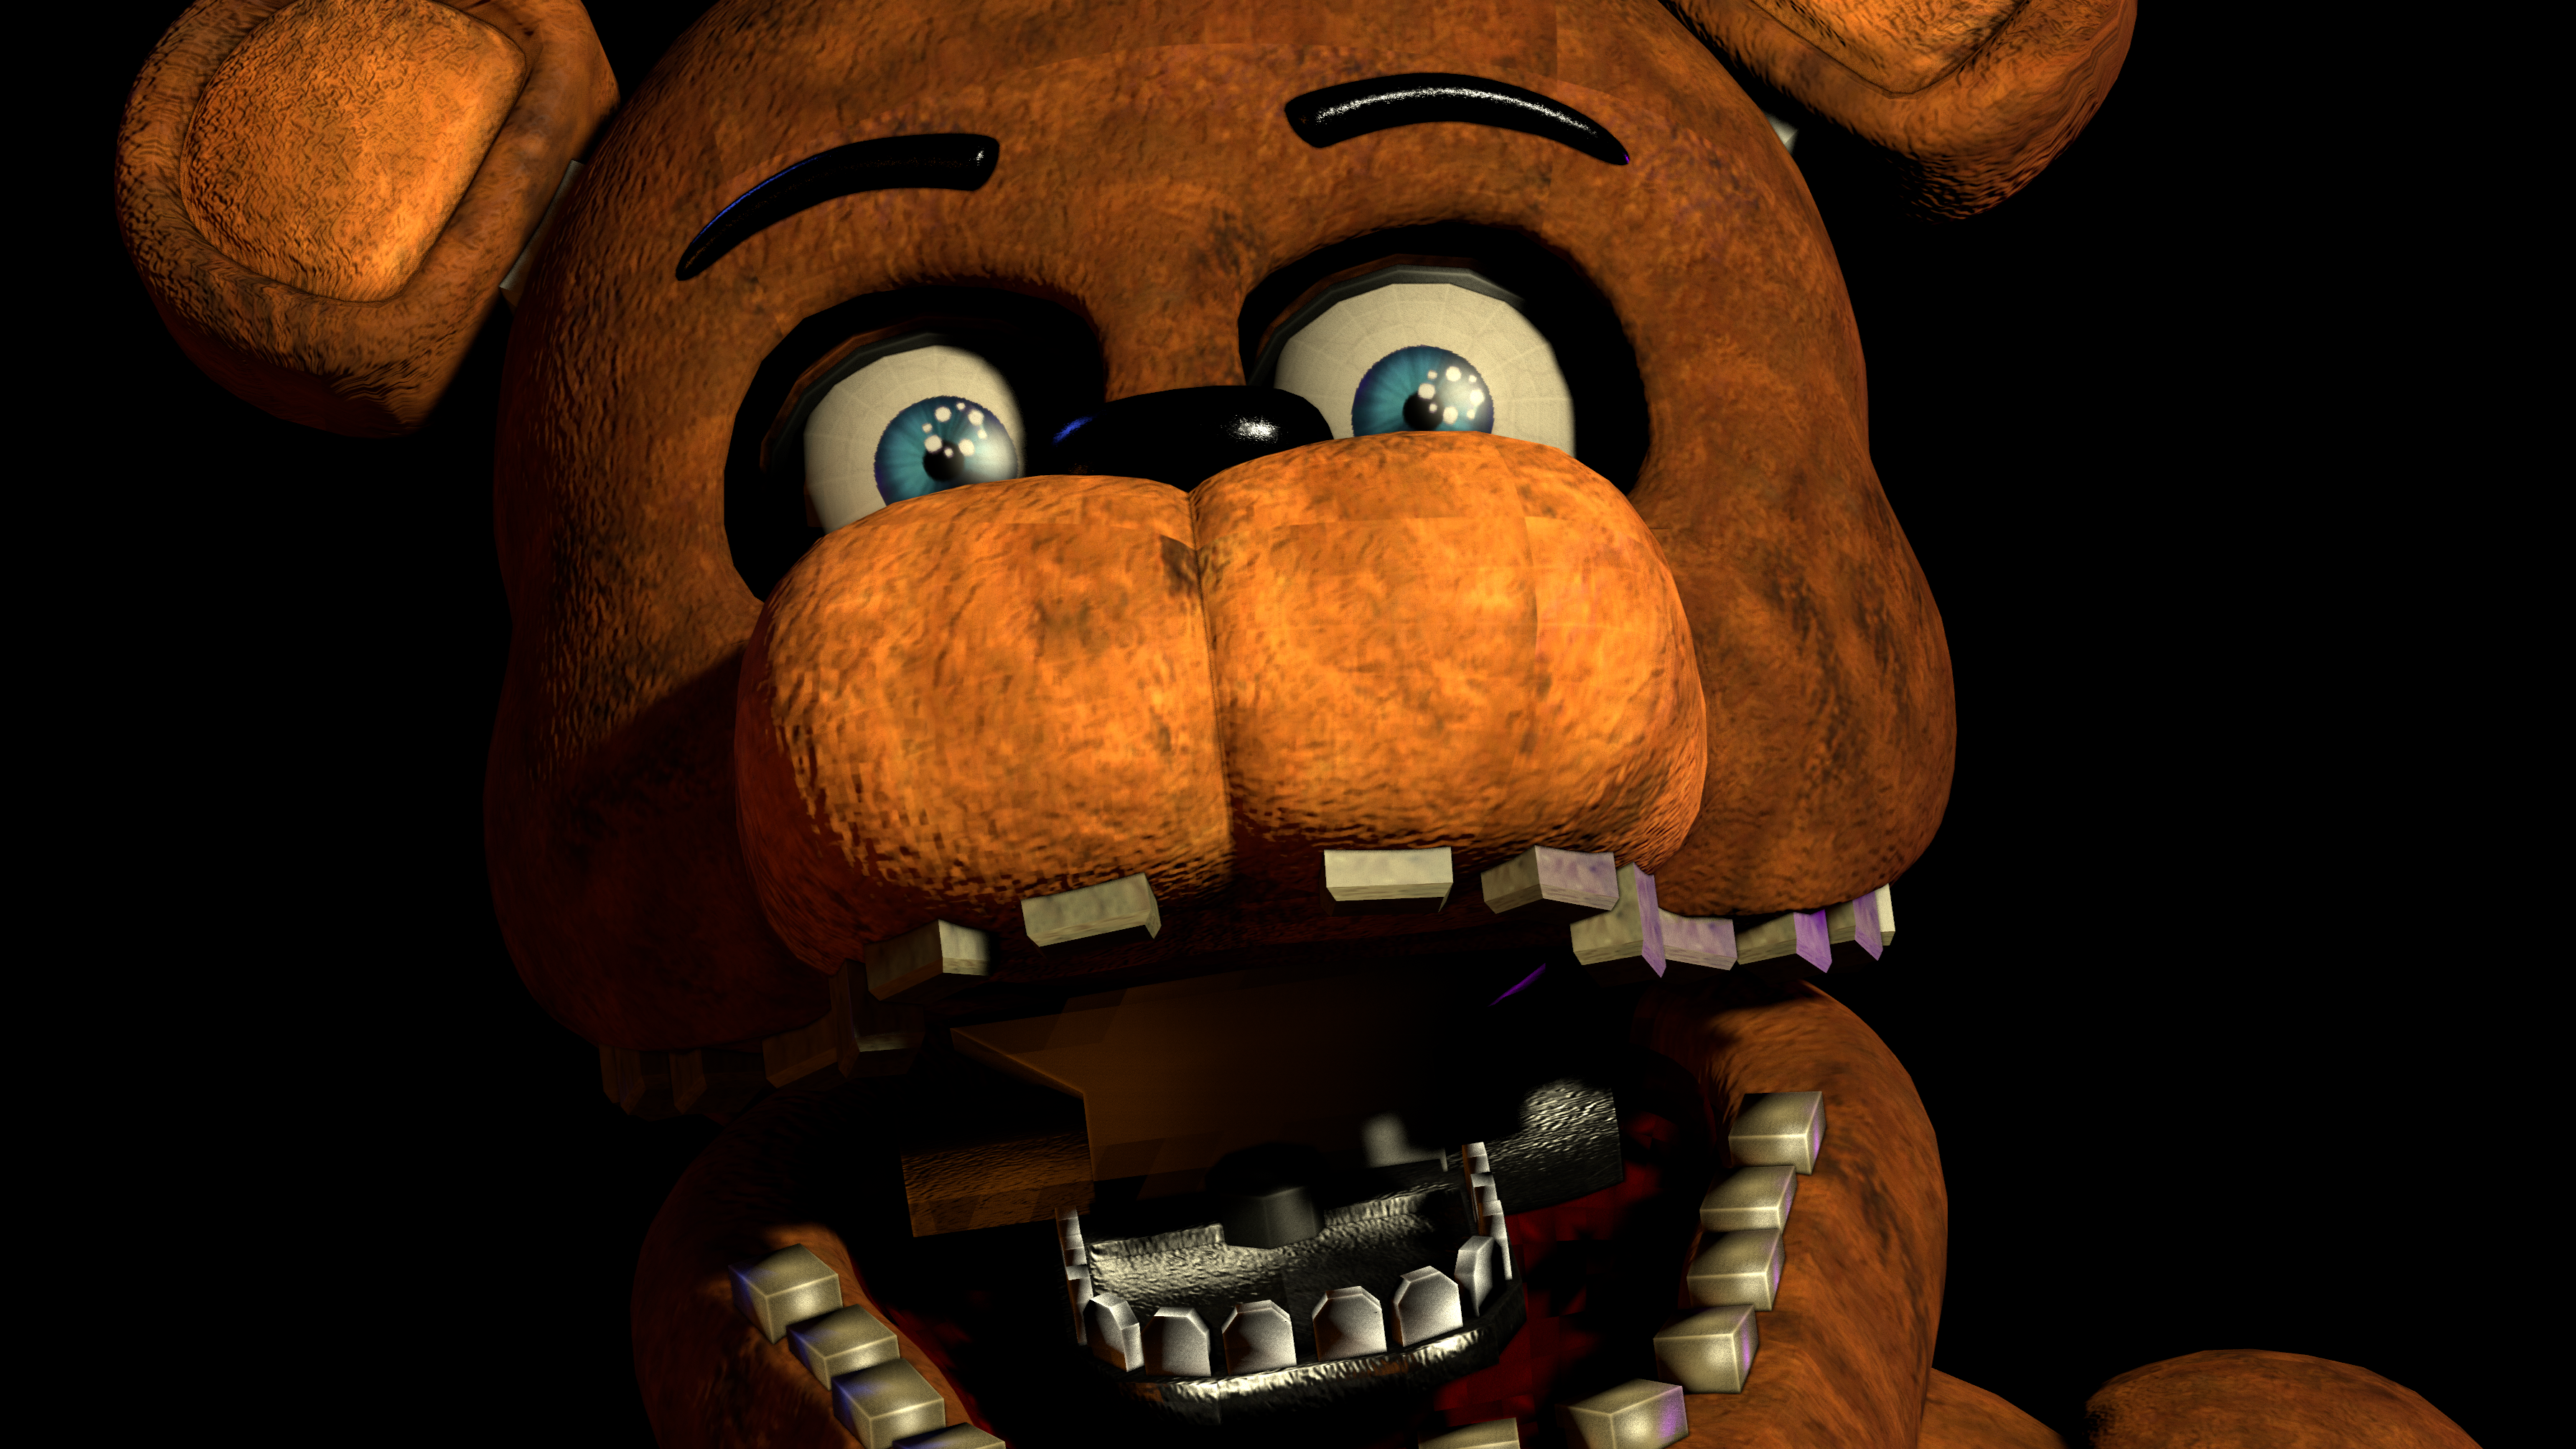 FNAF2] Withered Freddy Jumpscare by Delirious411 on DeviantArt